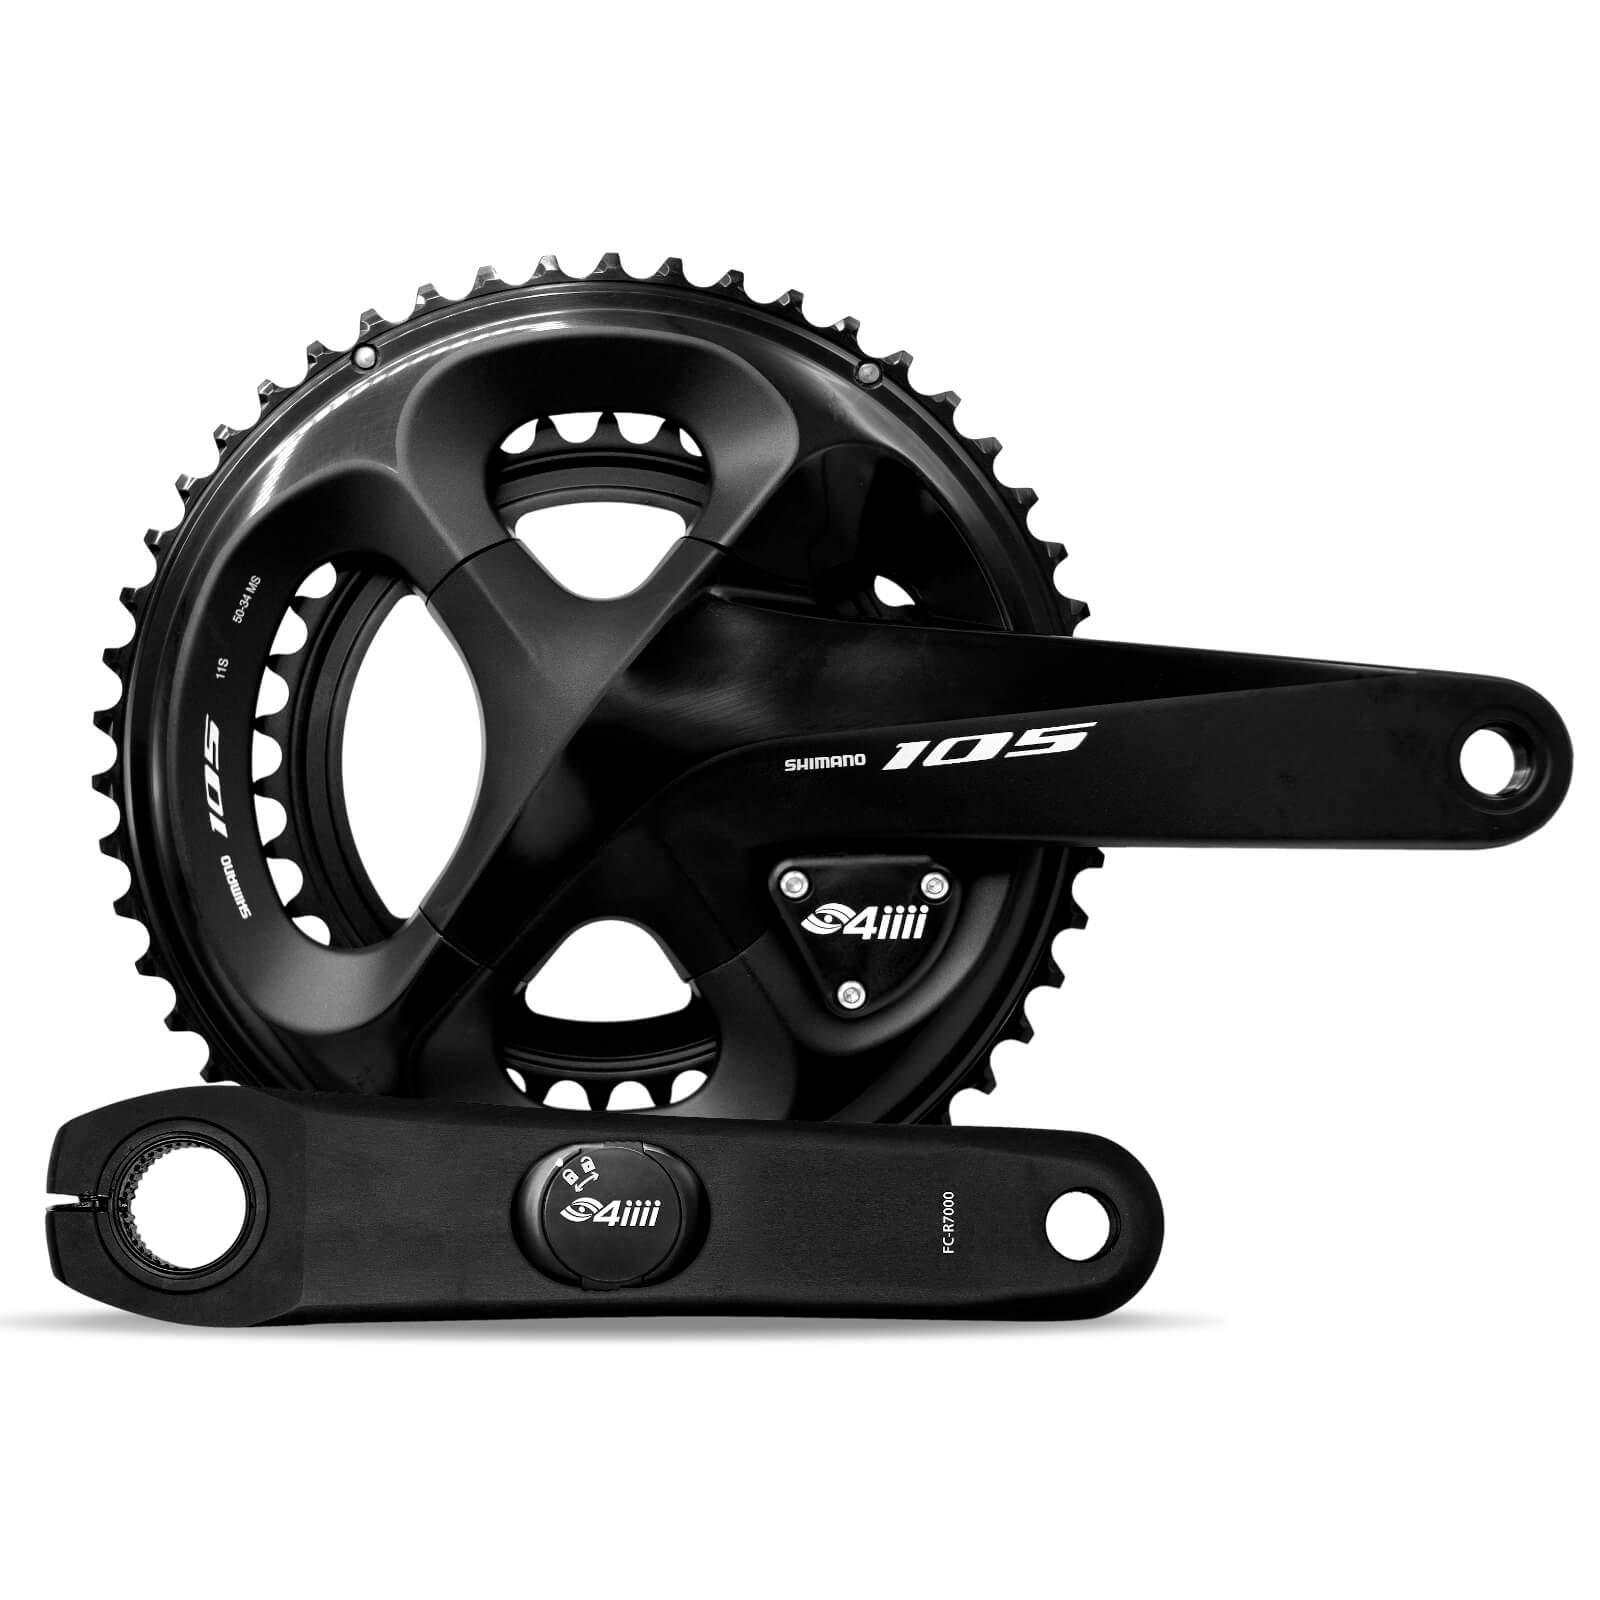 4iiii Precision Pro Dual Sided Power Meter - 105 R7000 - 170mm - 50-34T